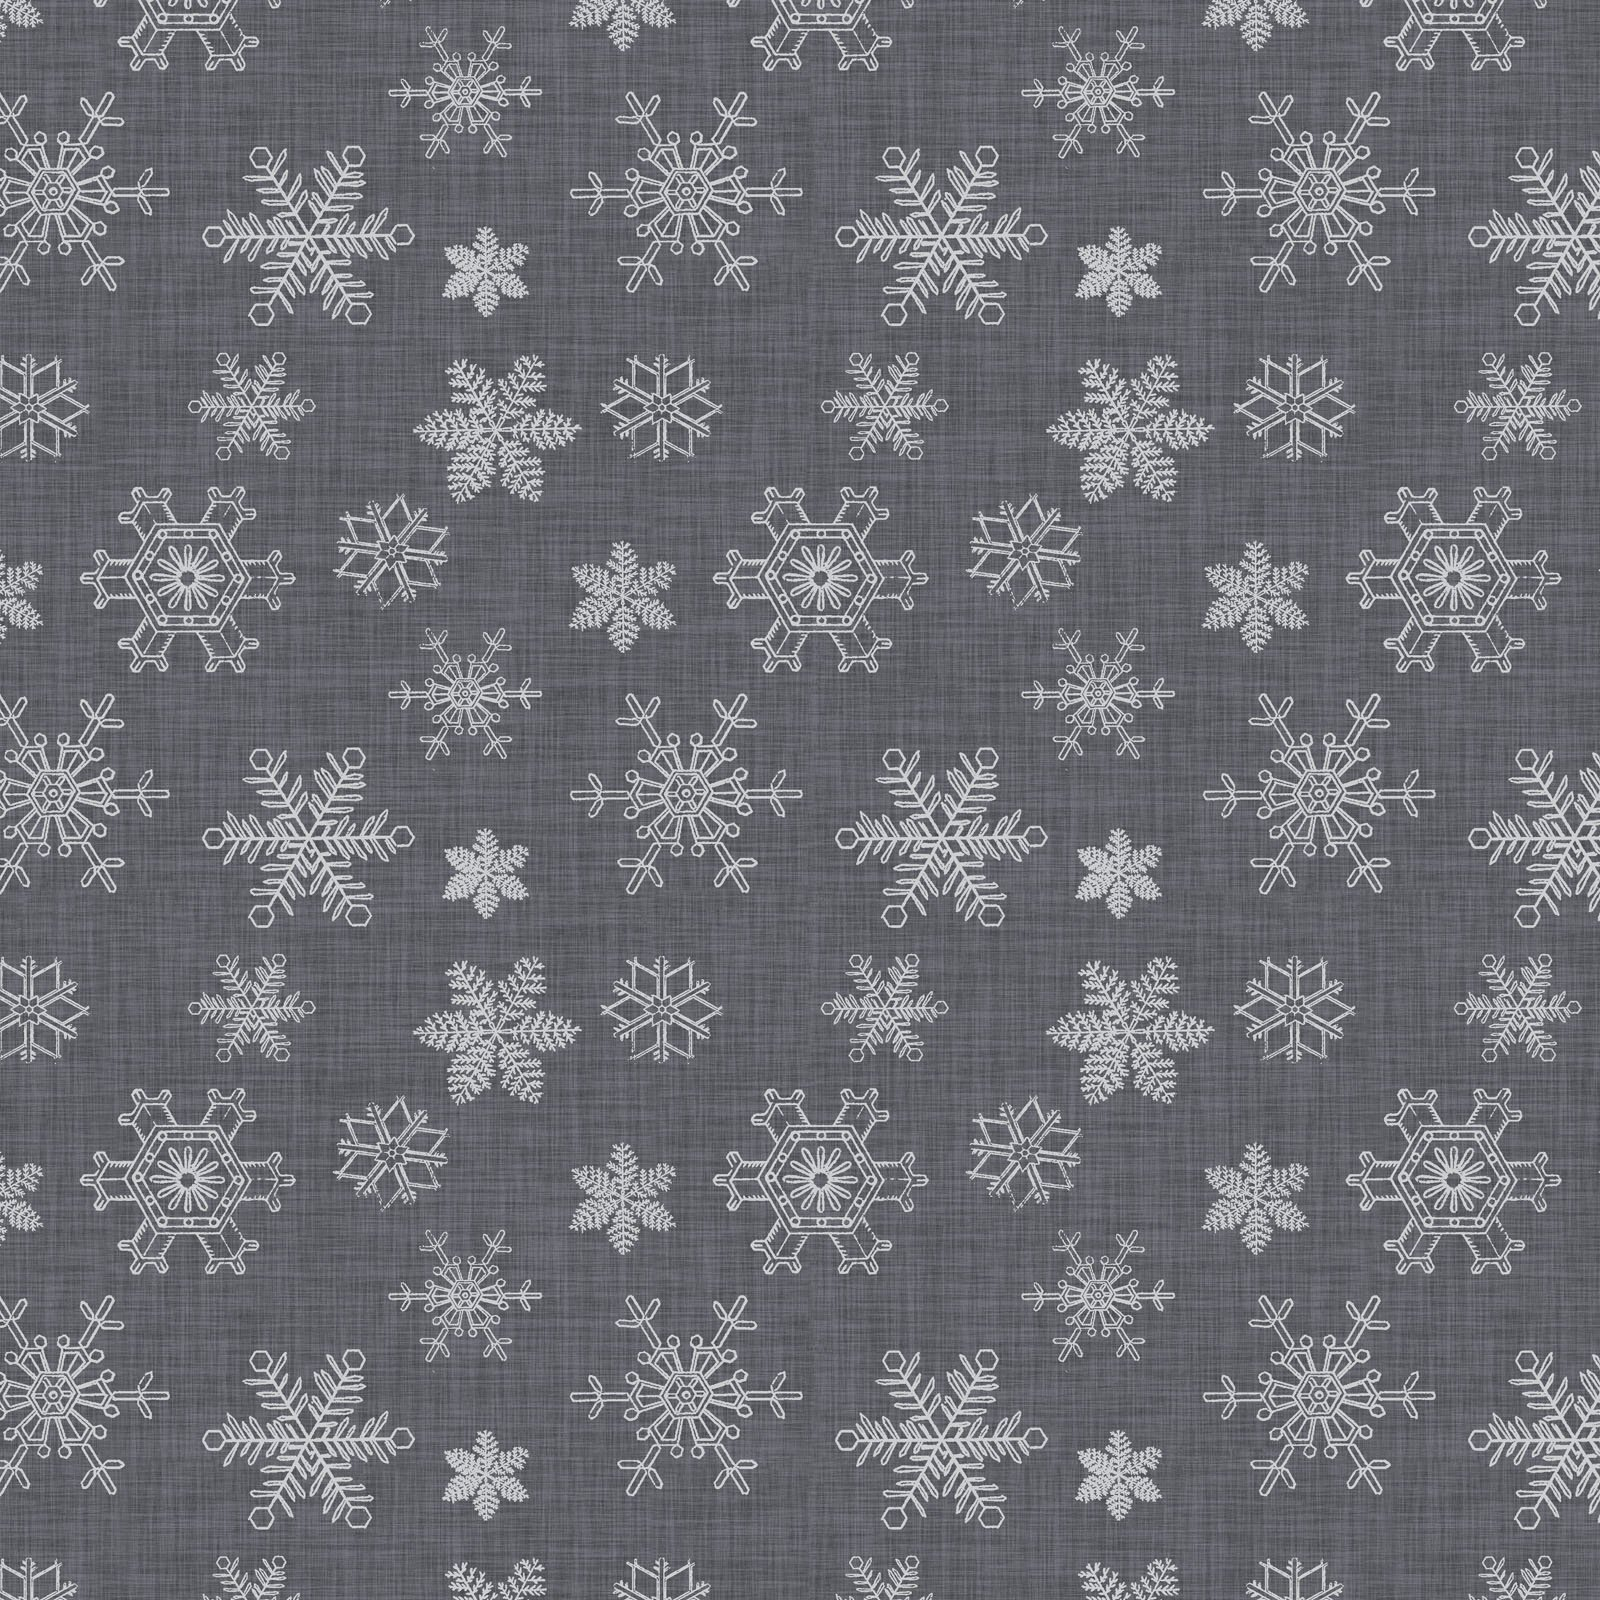 SOPC-4418 S- SOPHISTICATED CHRISTMAS BY GRACE POPP ALL OVER SNOWFLAKE SILVER - ARRIVING IN MAY 2021